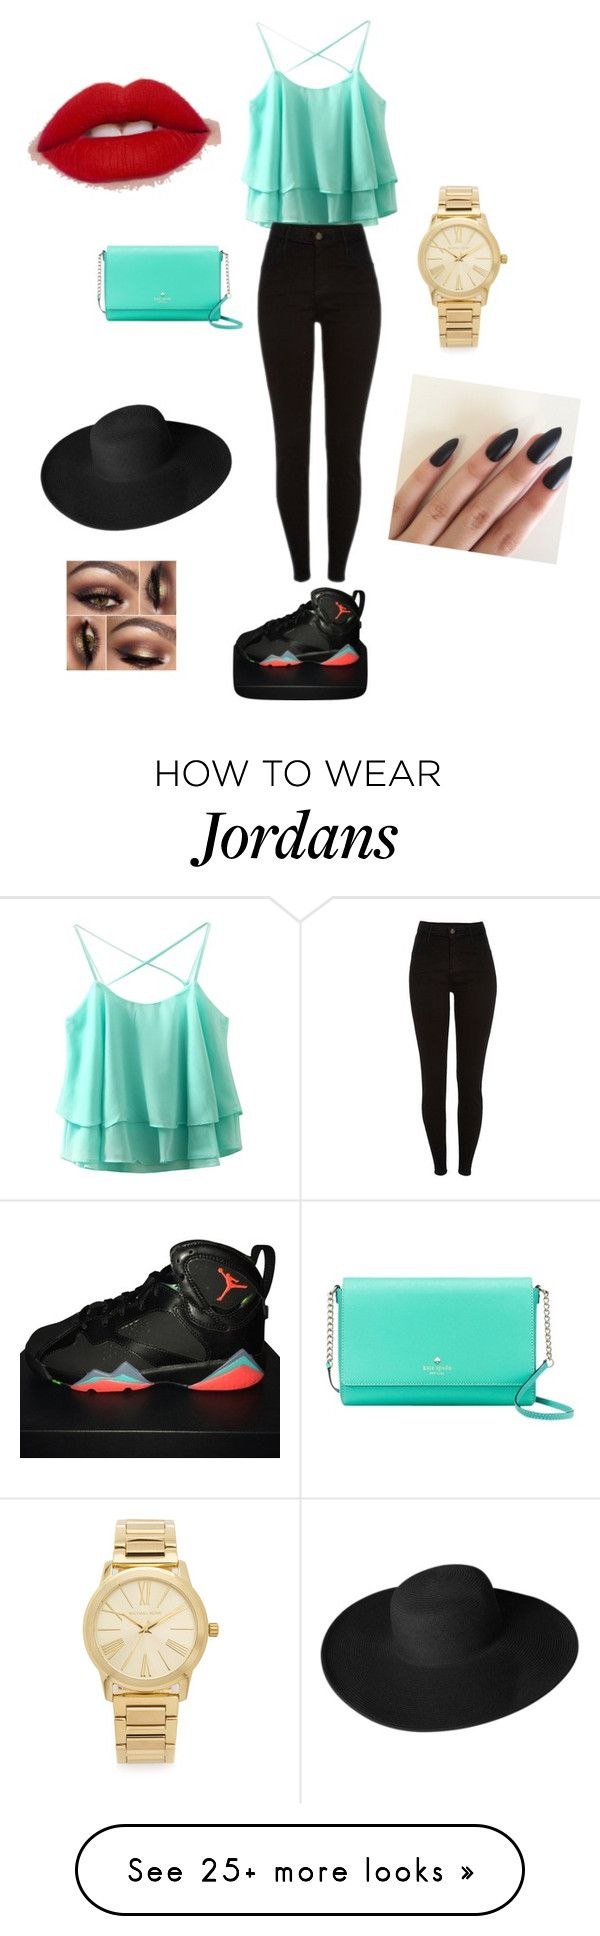 """Untitled #1"" by acyprian950 on Polyvore featuring NIKE, Kate Spade, Michael Kors and Dorfman Pacific"